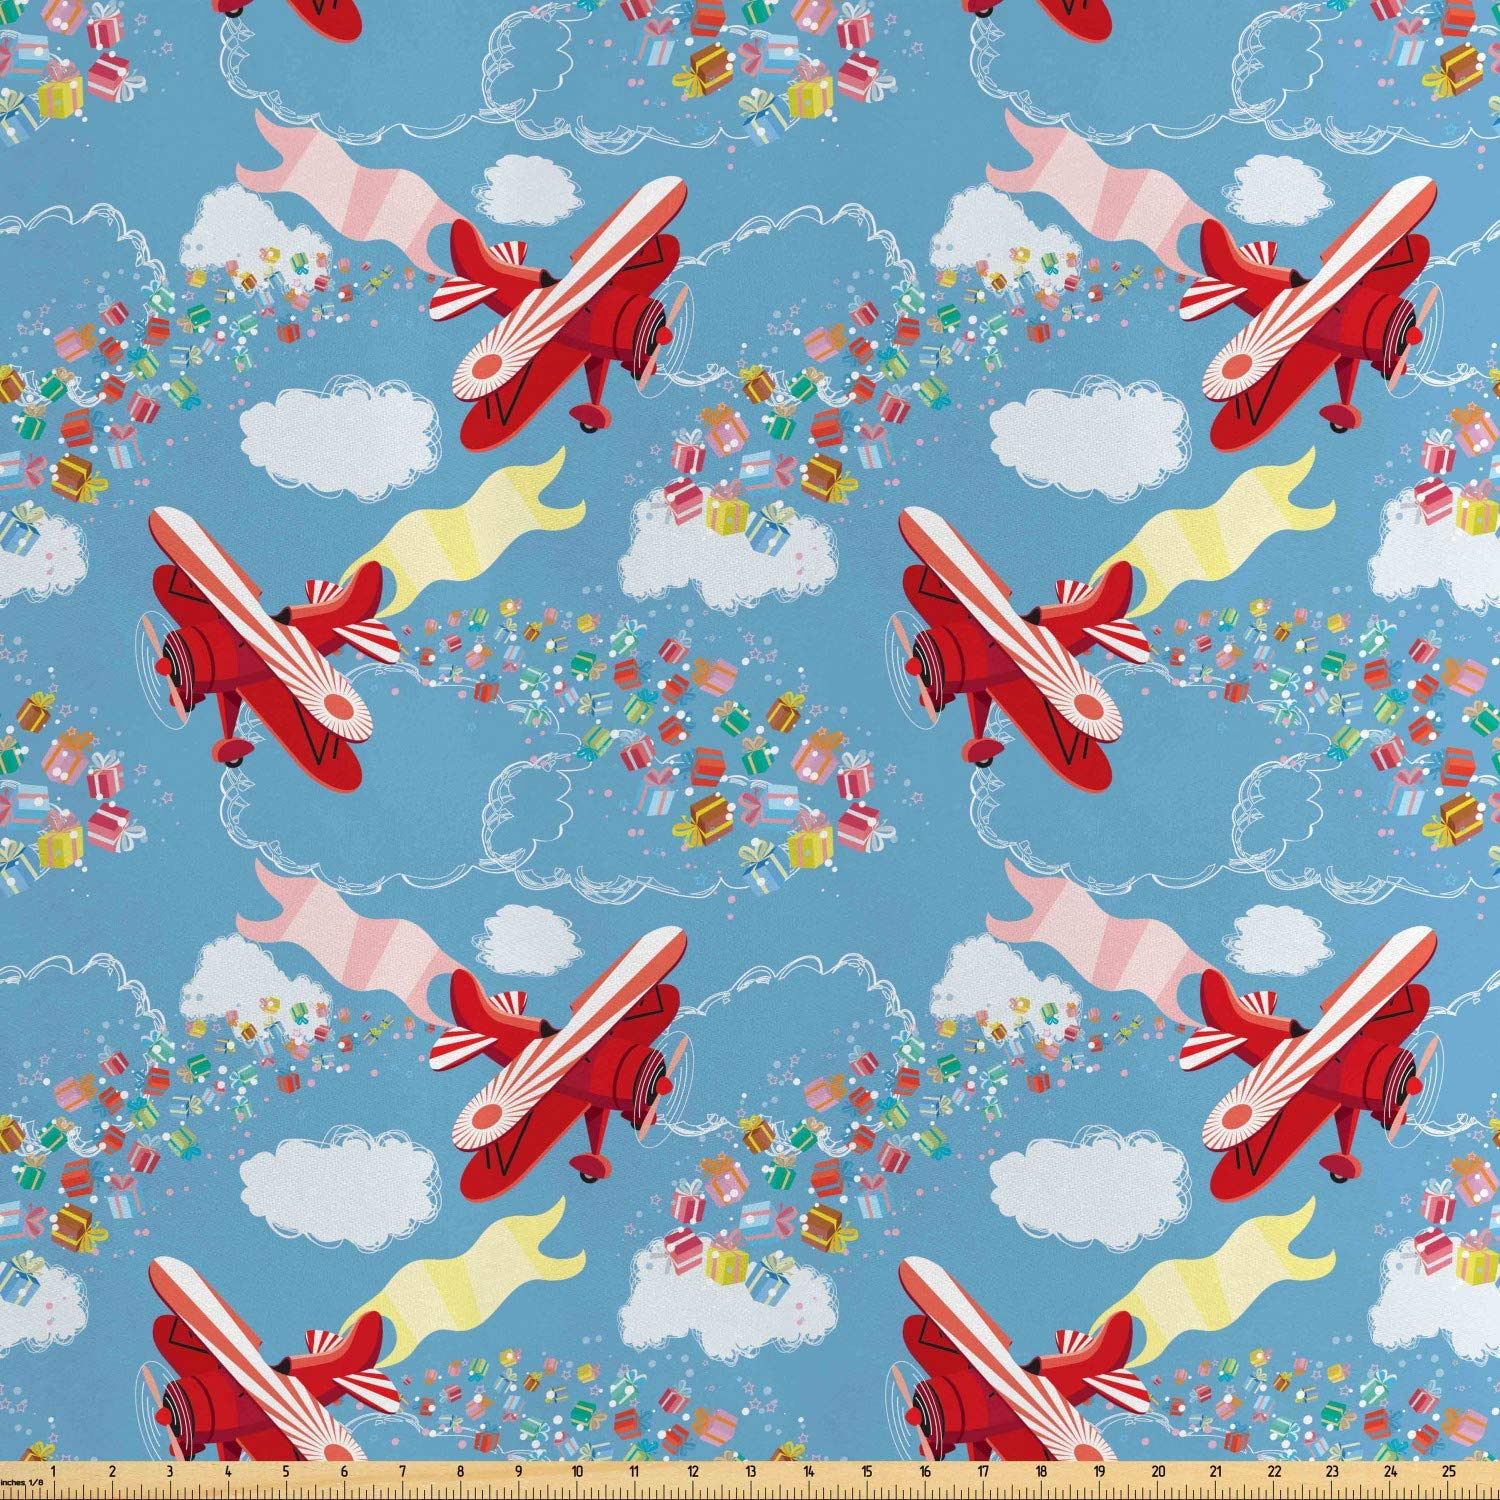 Ambesonne Airplane Fabric by The Yard, Retro Biplanes with Pennants Throwing Present Boxes Announcement Celebration Art, Decorative Satin Fabric for Home Textiles and Crafts, Multicolor